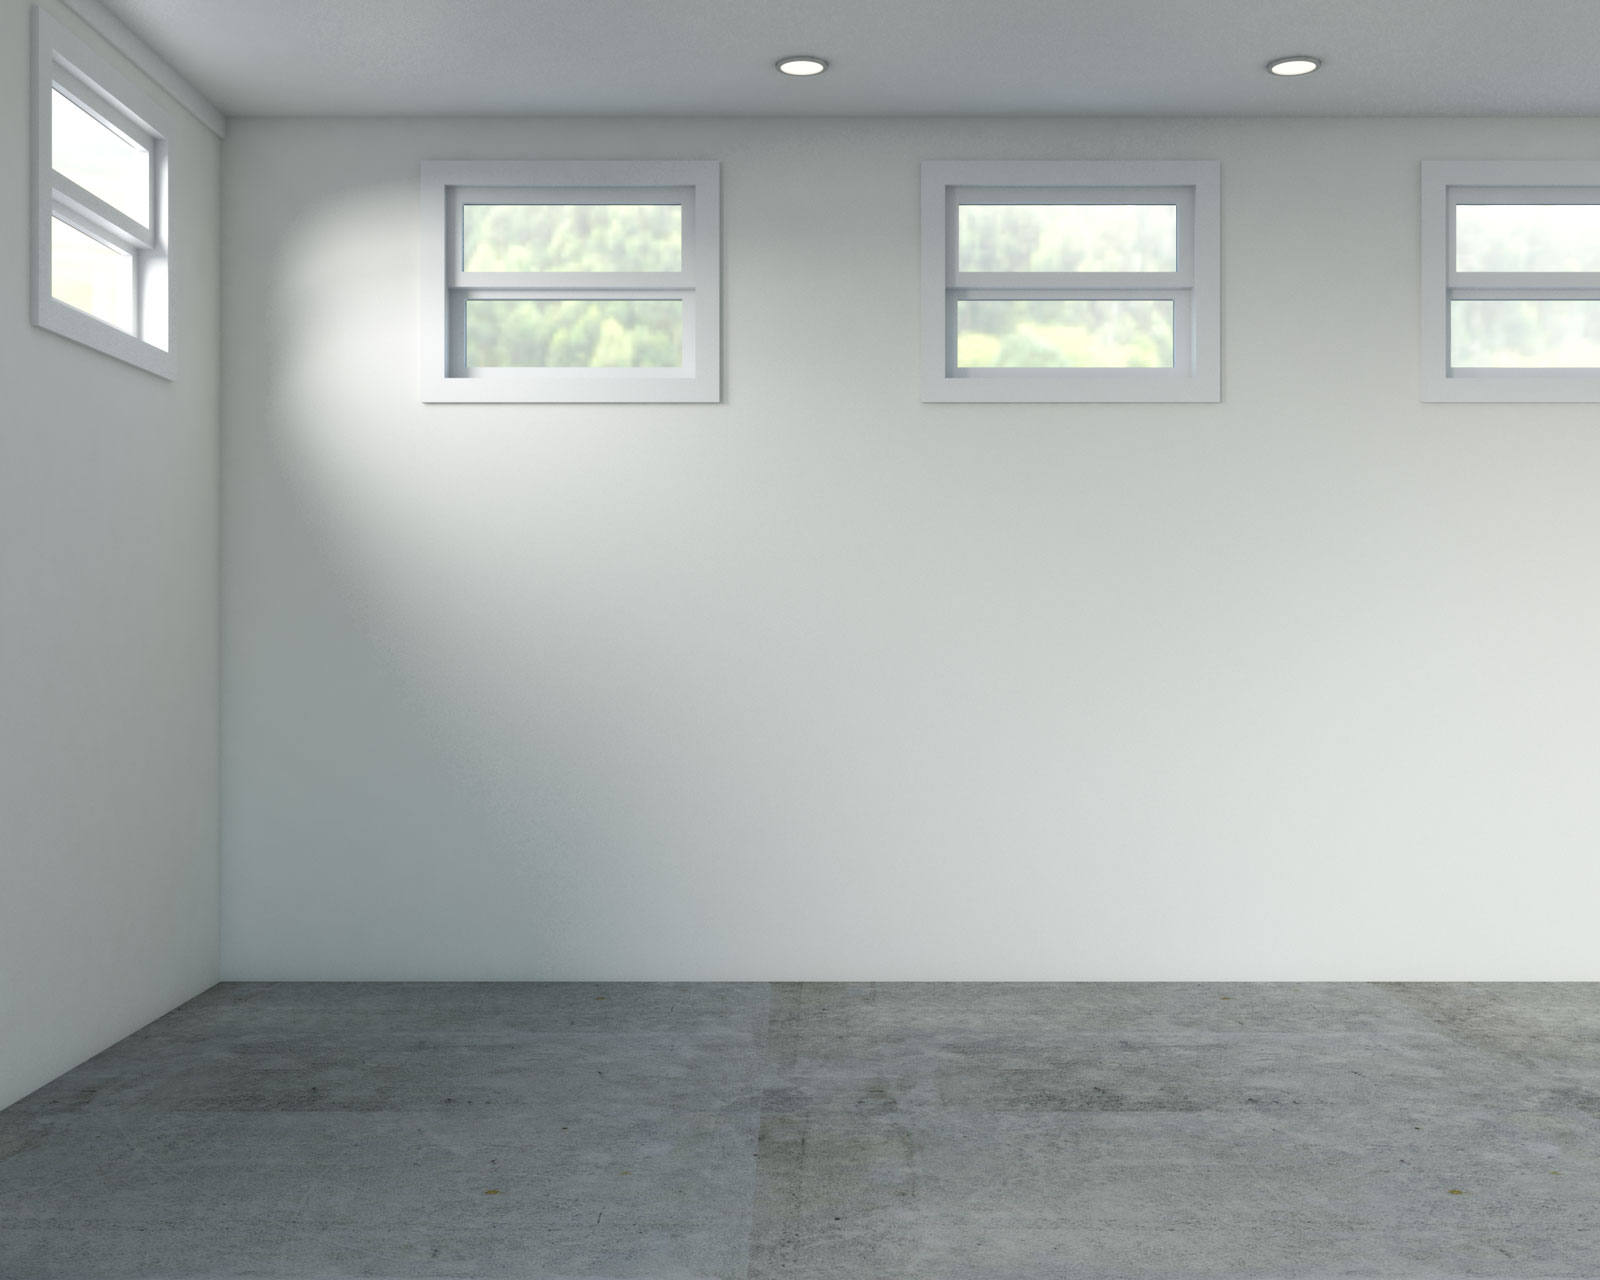 Basement with ivory walls and concrete floors